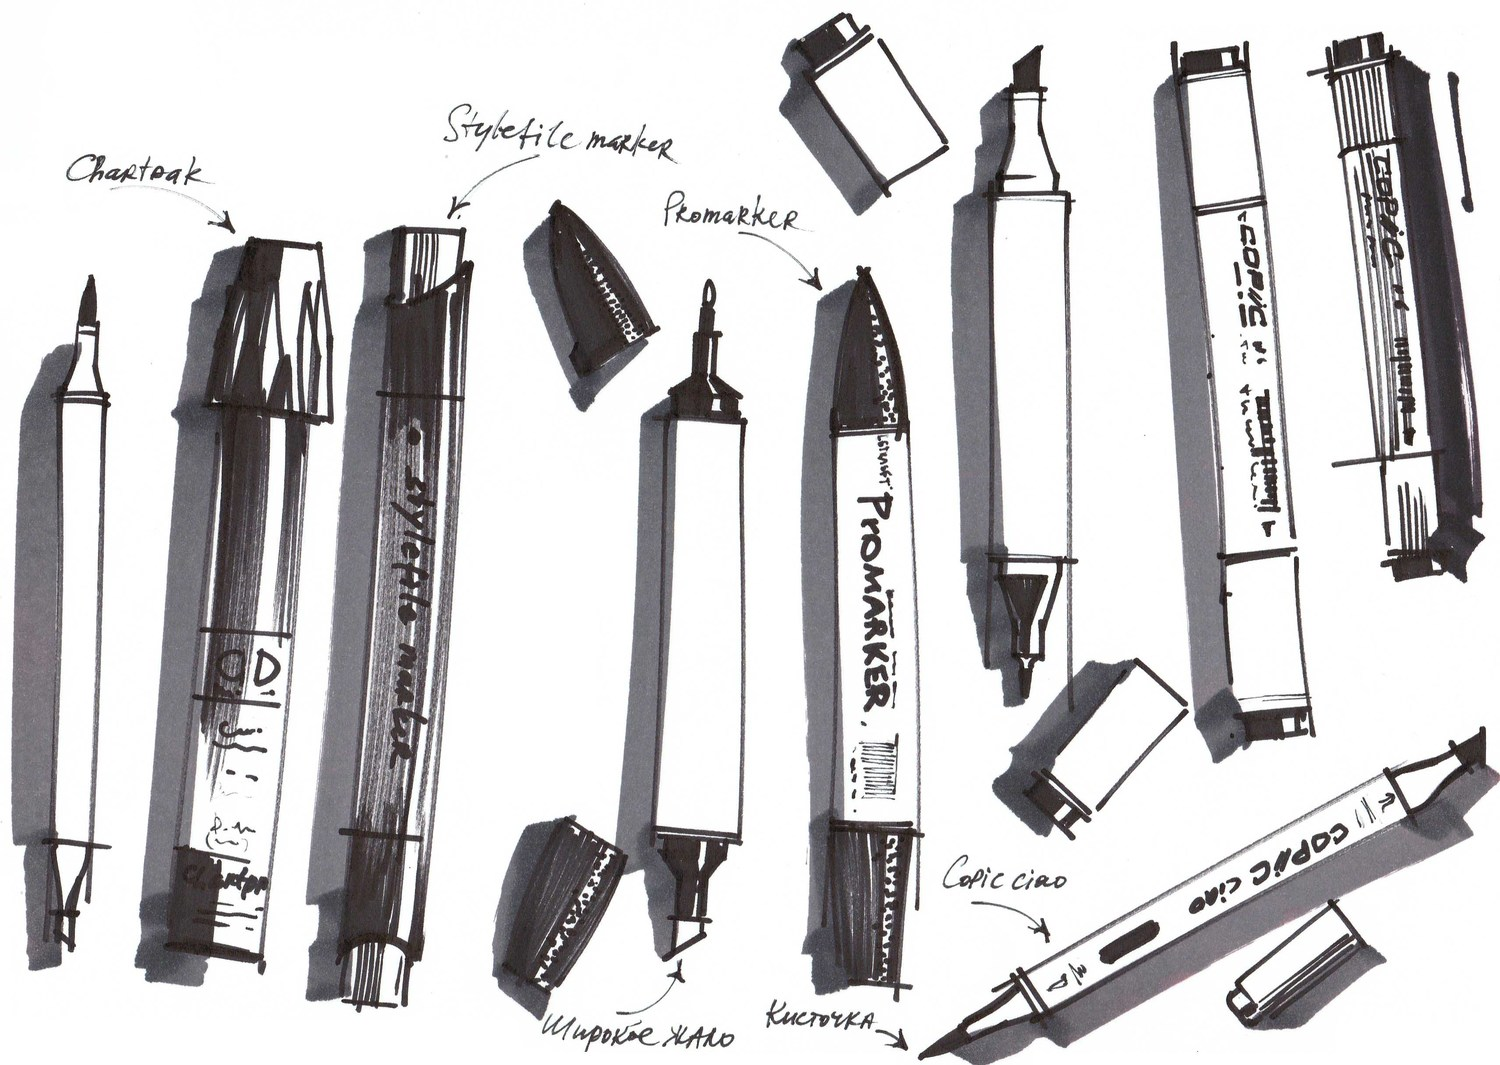 Architectural Sketching and Rendering: Techniques for Designers and Artists